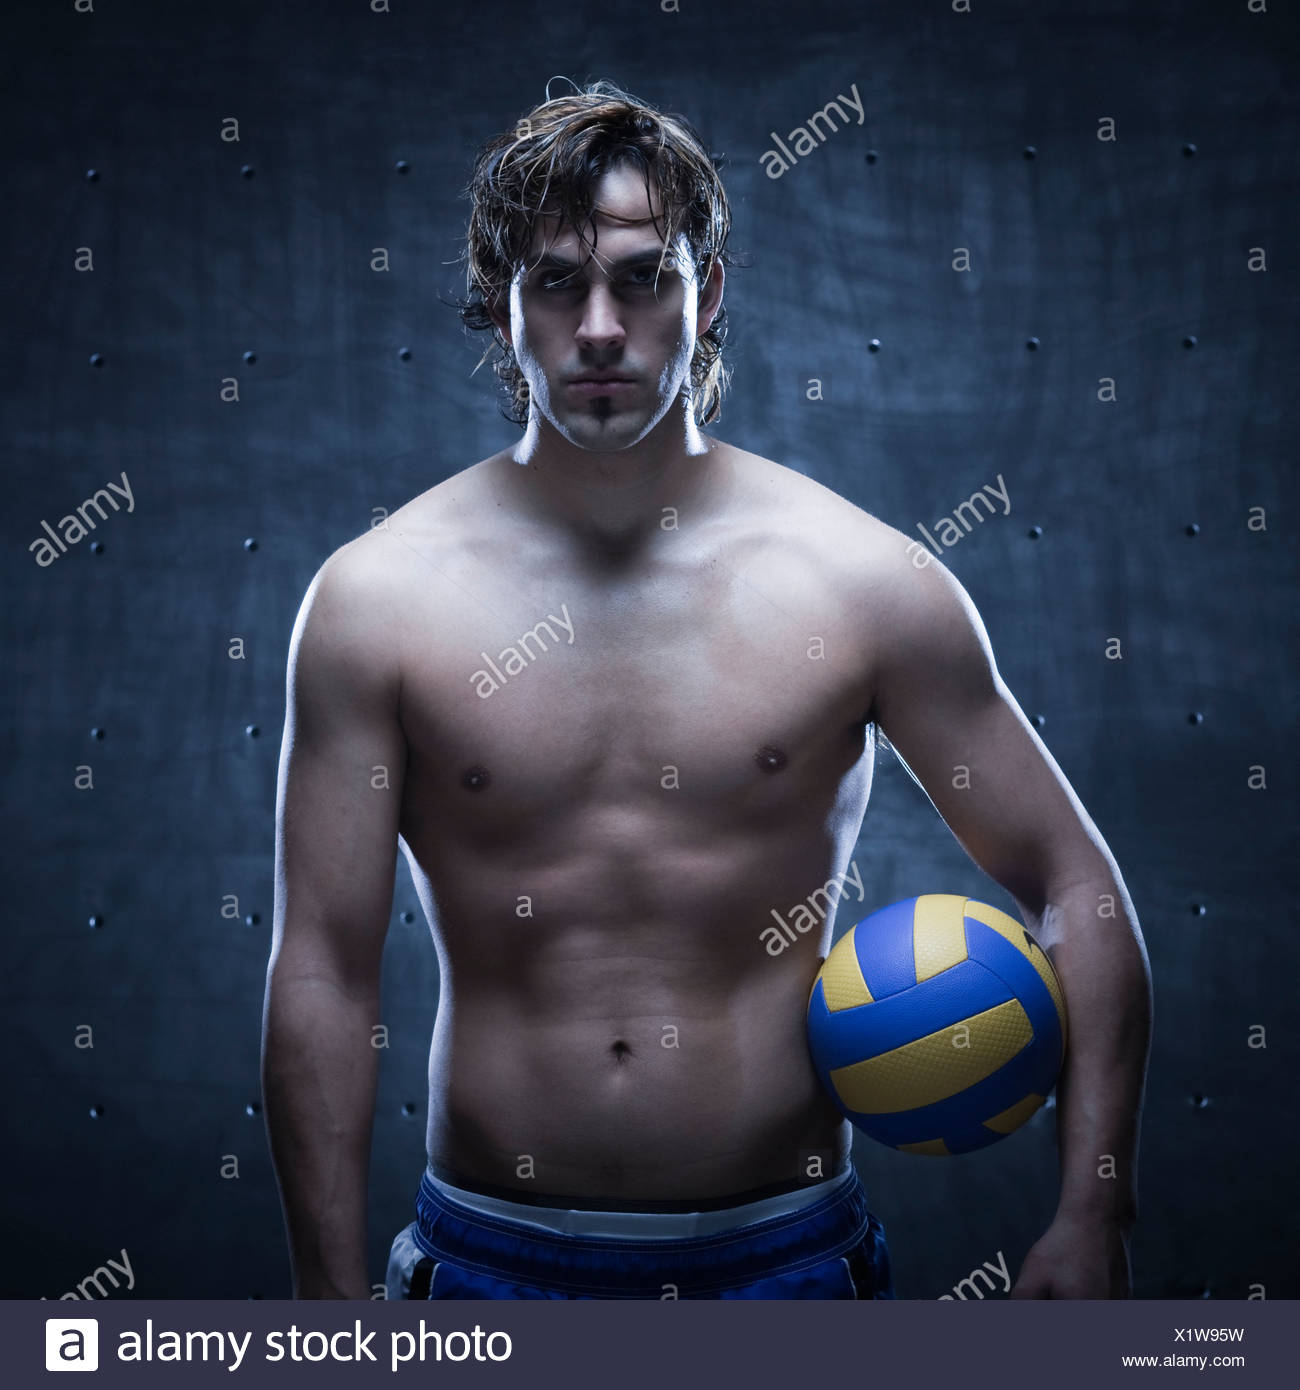 Portrait de joueur de volley-ball debout et tenant ball Photo Stock